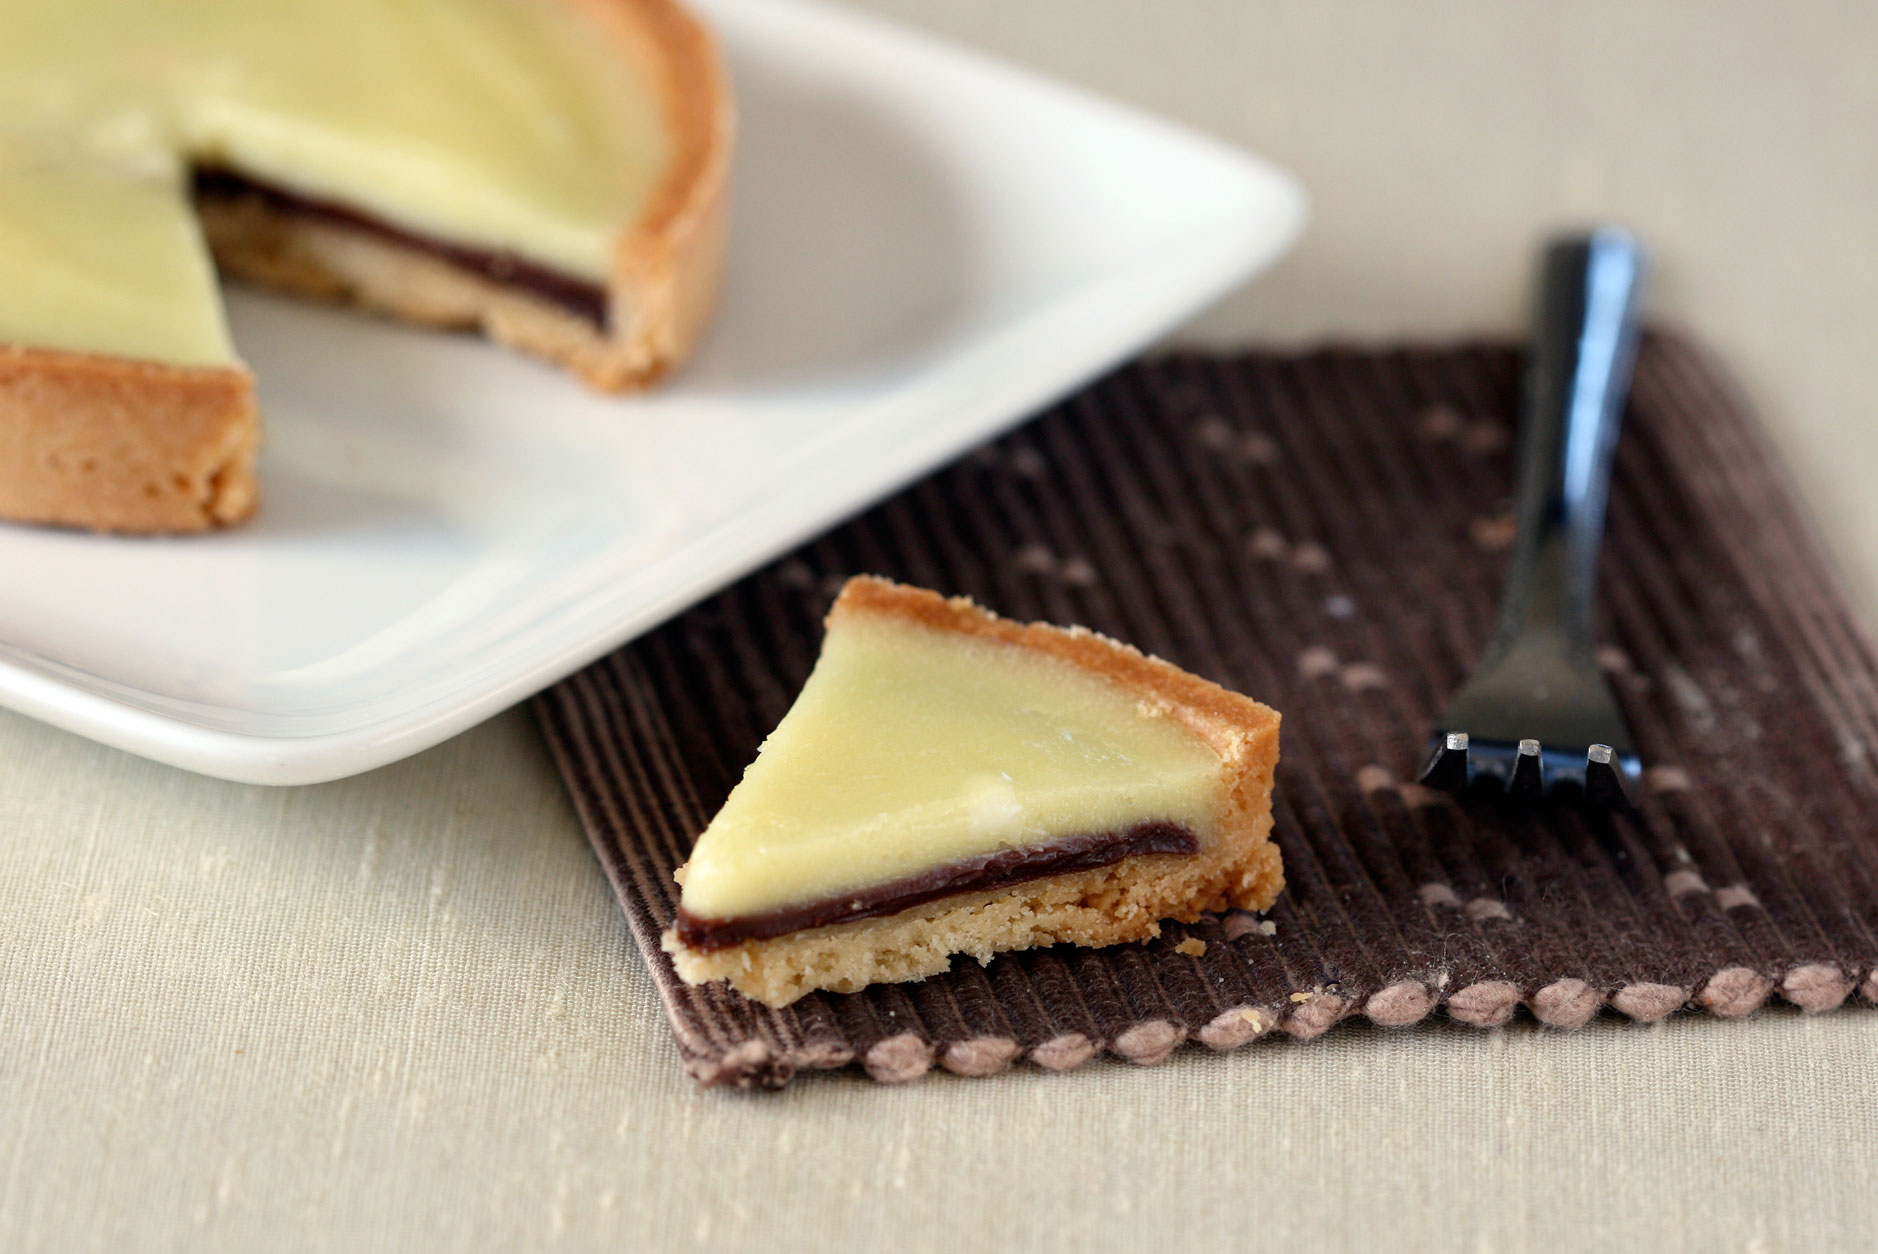 ... an Old Favorite: Meyer Lemon and Chocolate Tart - Dessert First